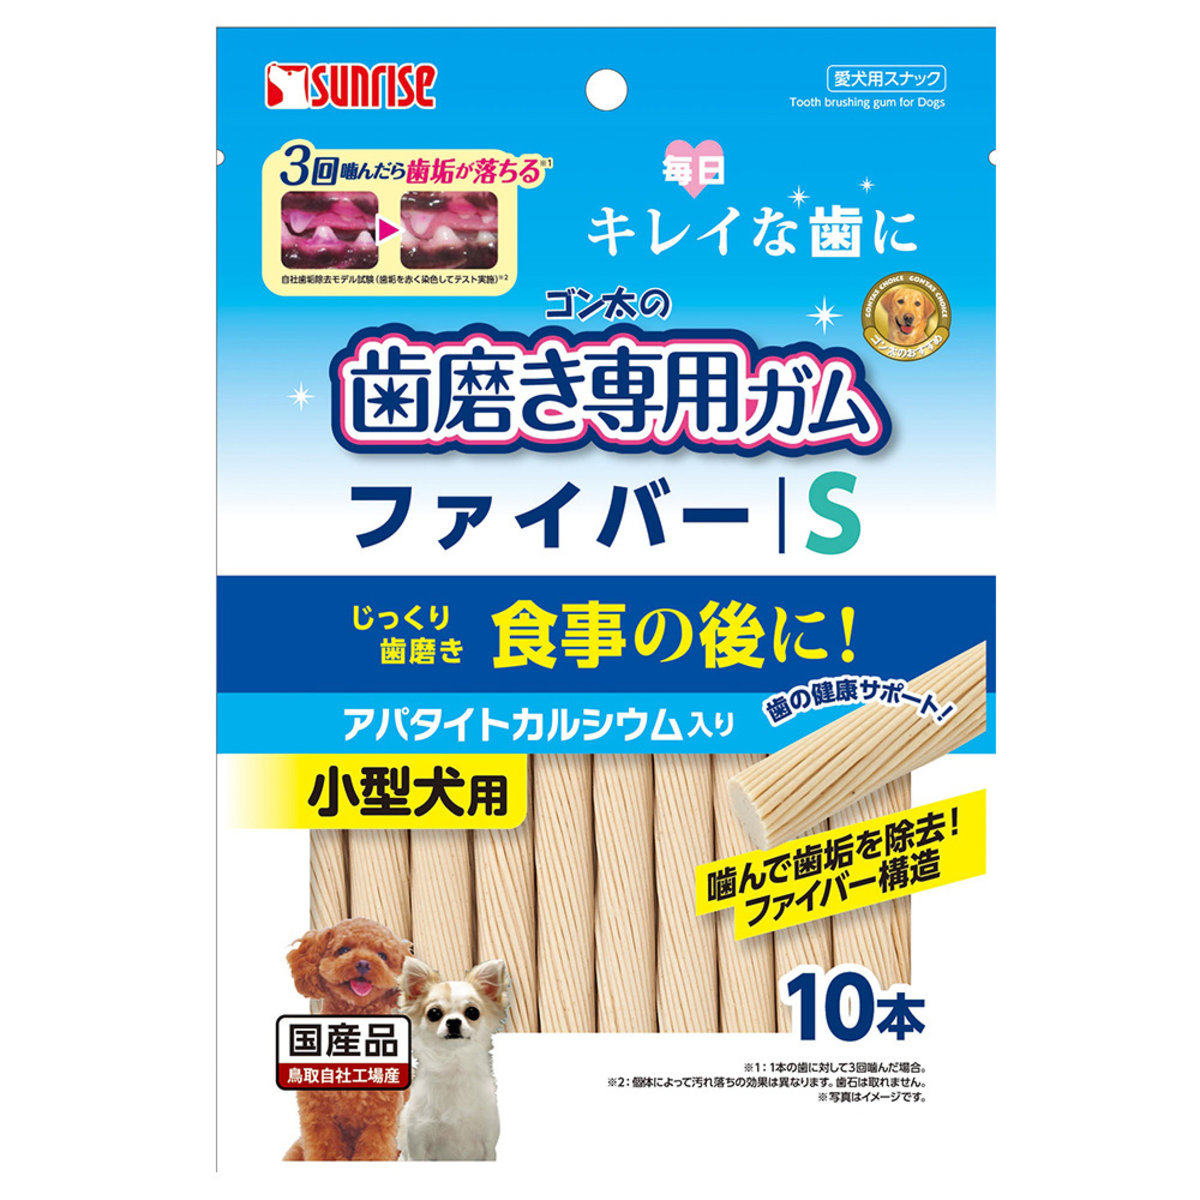 Fibrous tooth cleaner S size - 10pcs (Containing Apatite Calcium) (4973321924606) Best Before:31/7